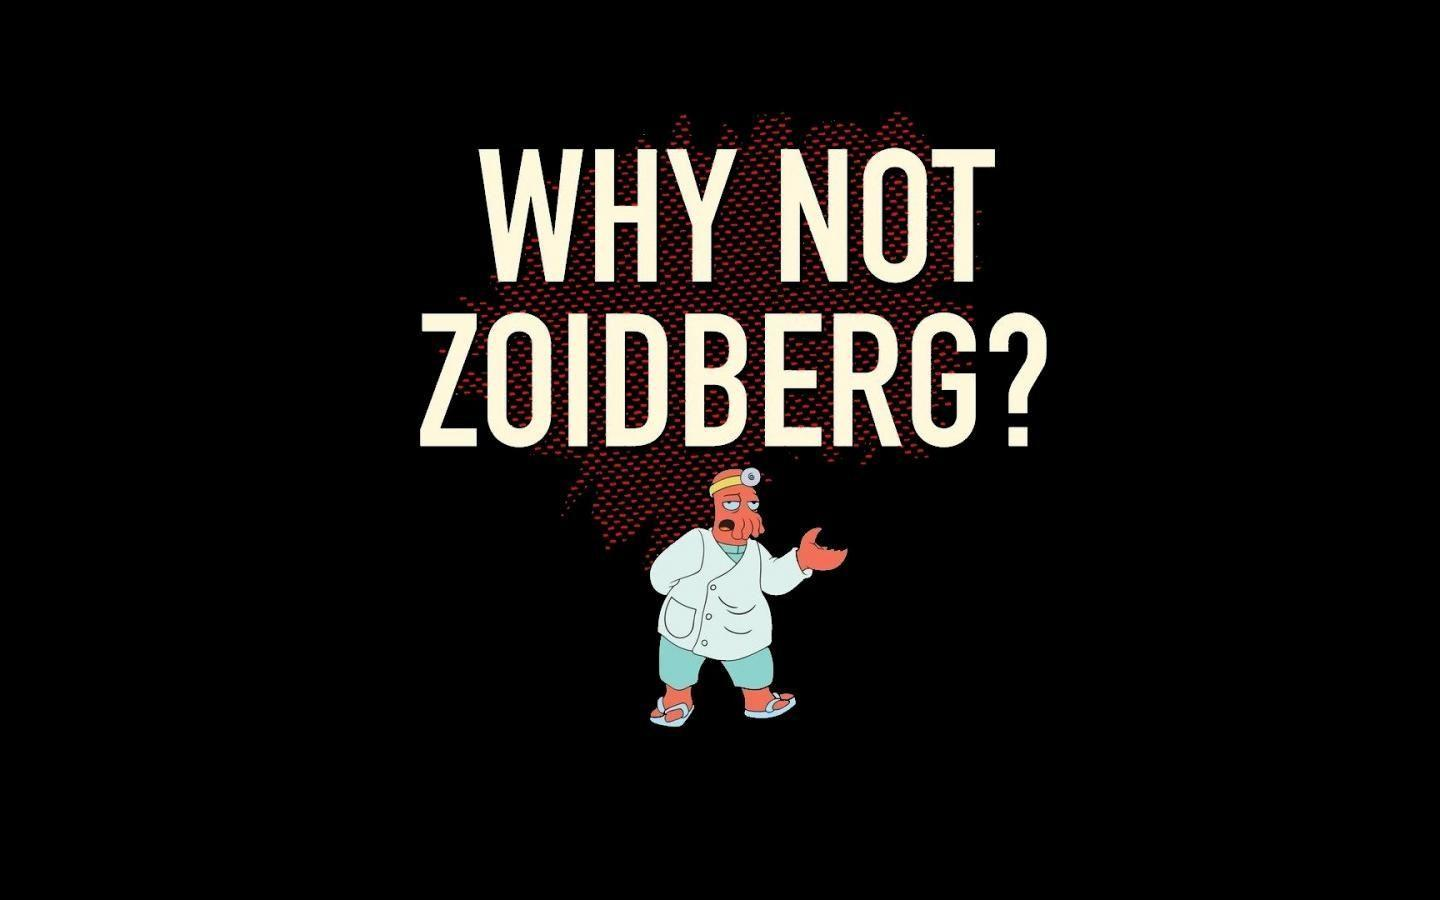 futurama funny dr zoidberg questions black backgrounds